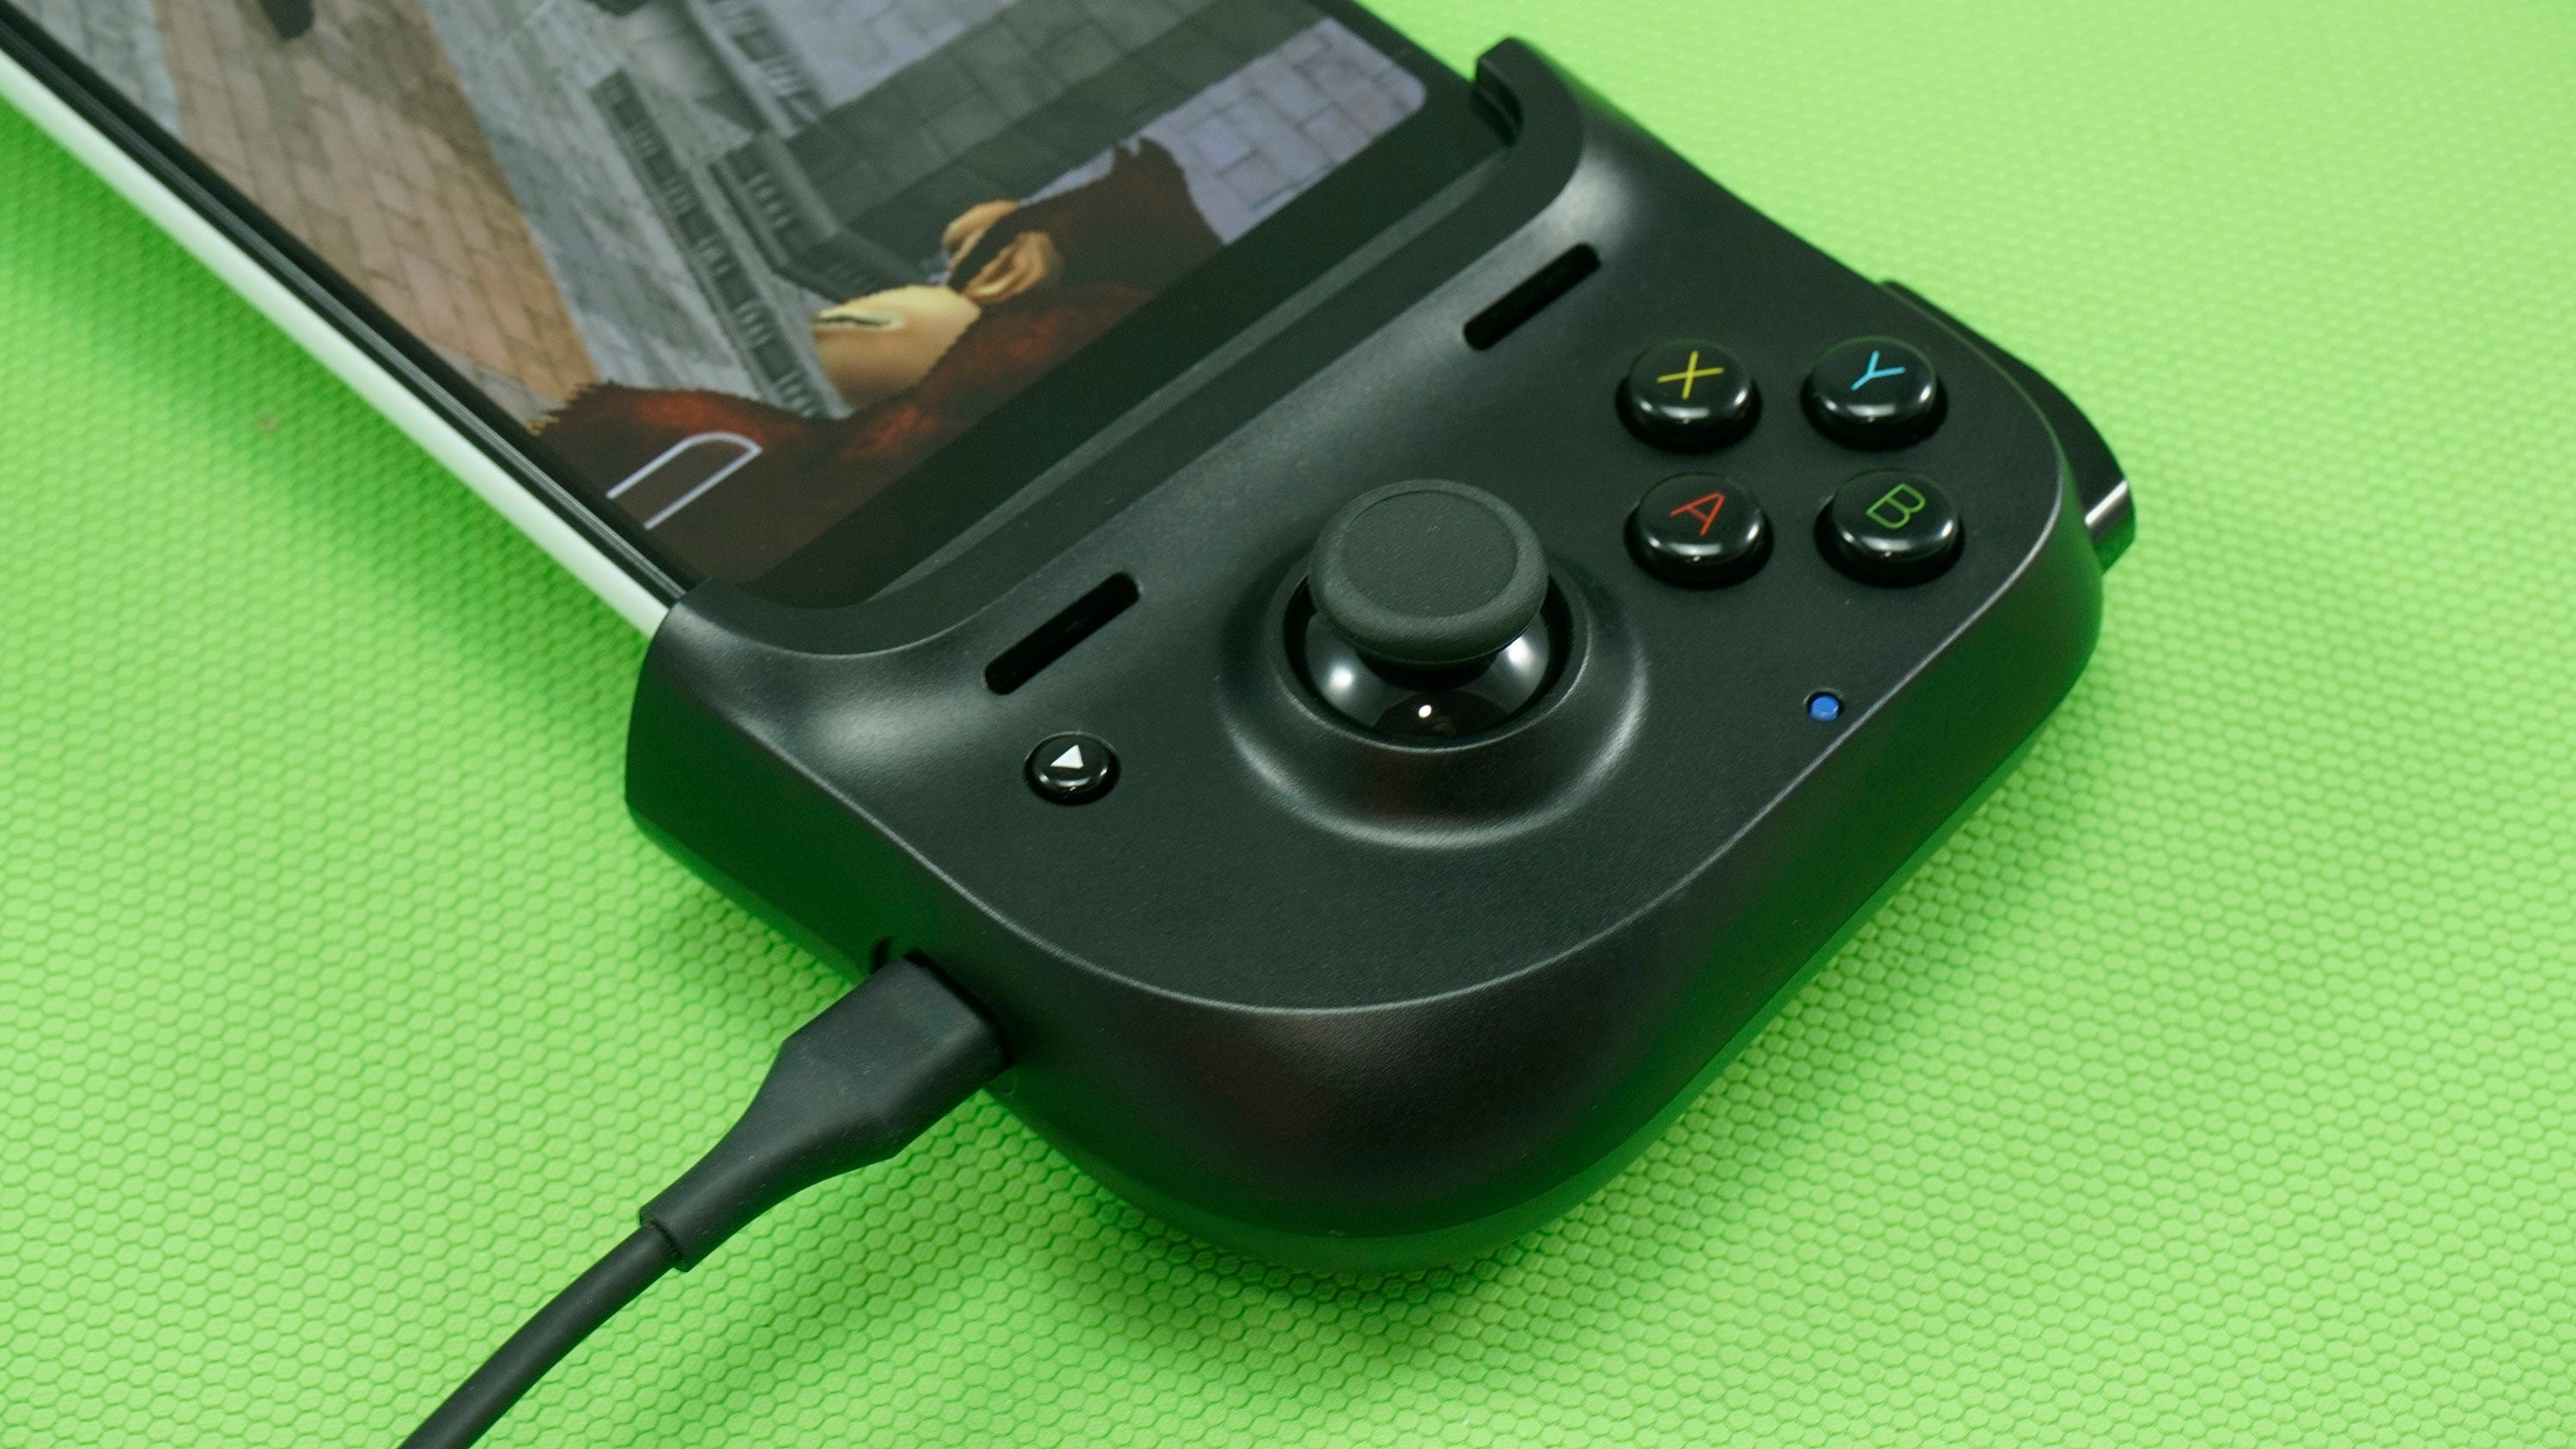 Razer Kishi with charger attached.